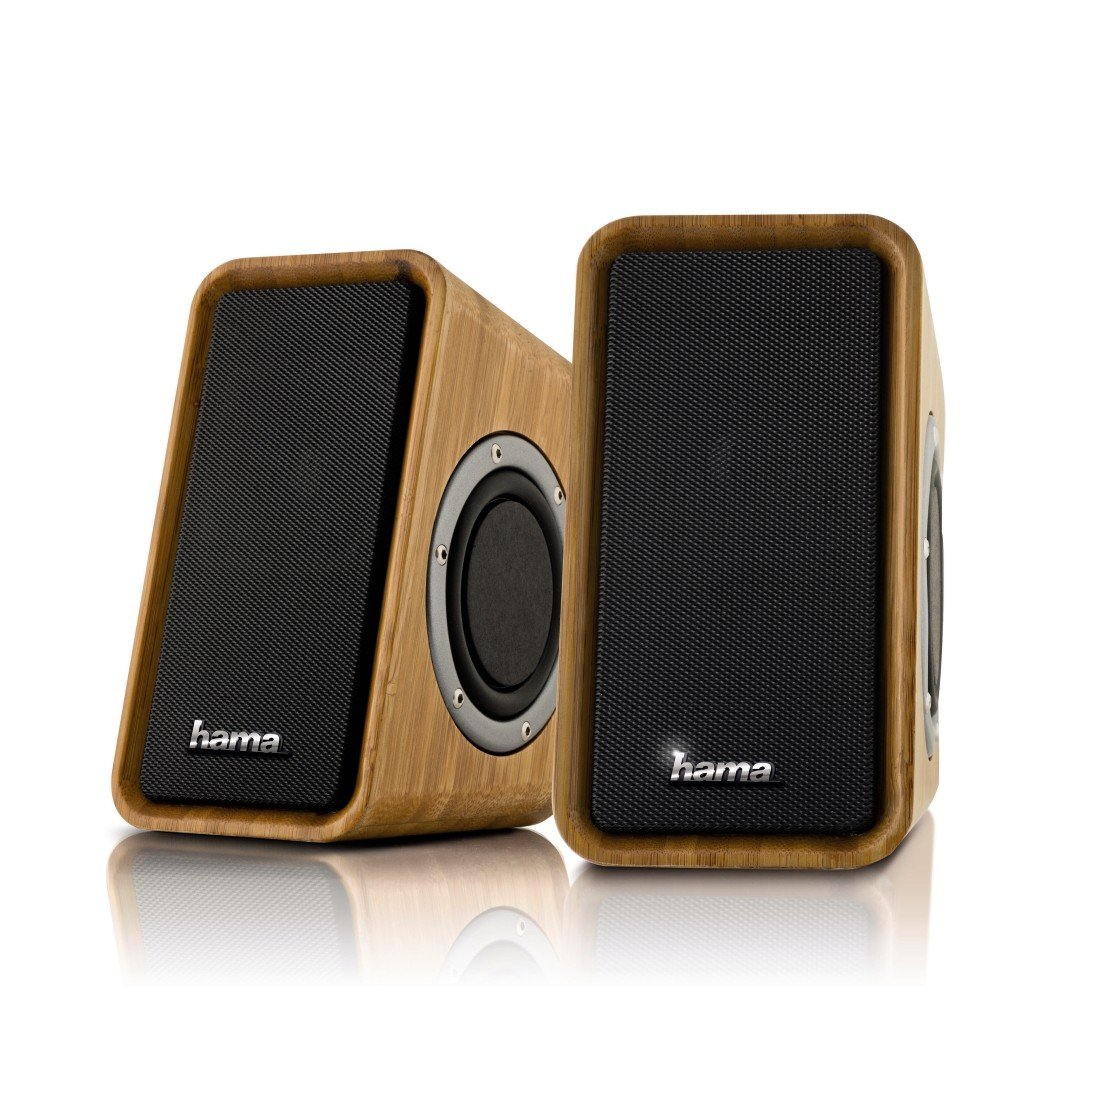 052805 hama bambus bamboo pc speaker pc. Black Bedroom Furniture Sets. Home Design Ideas